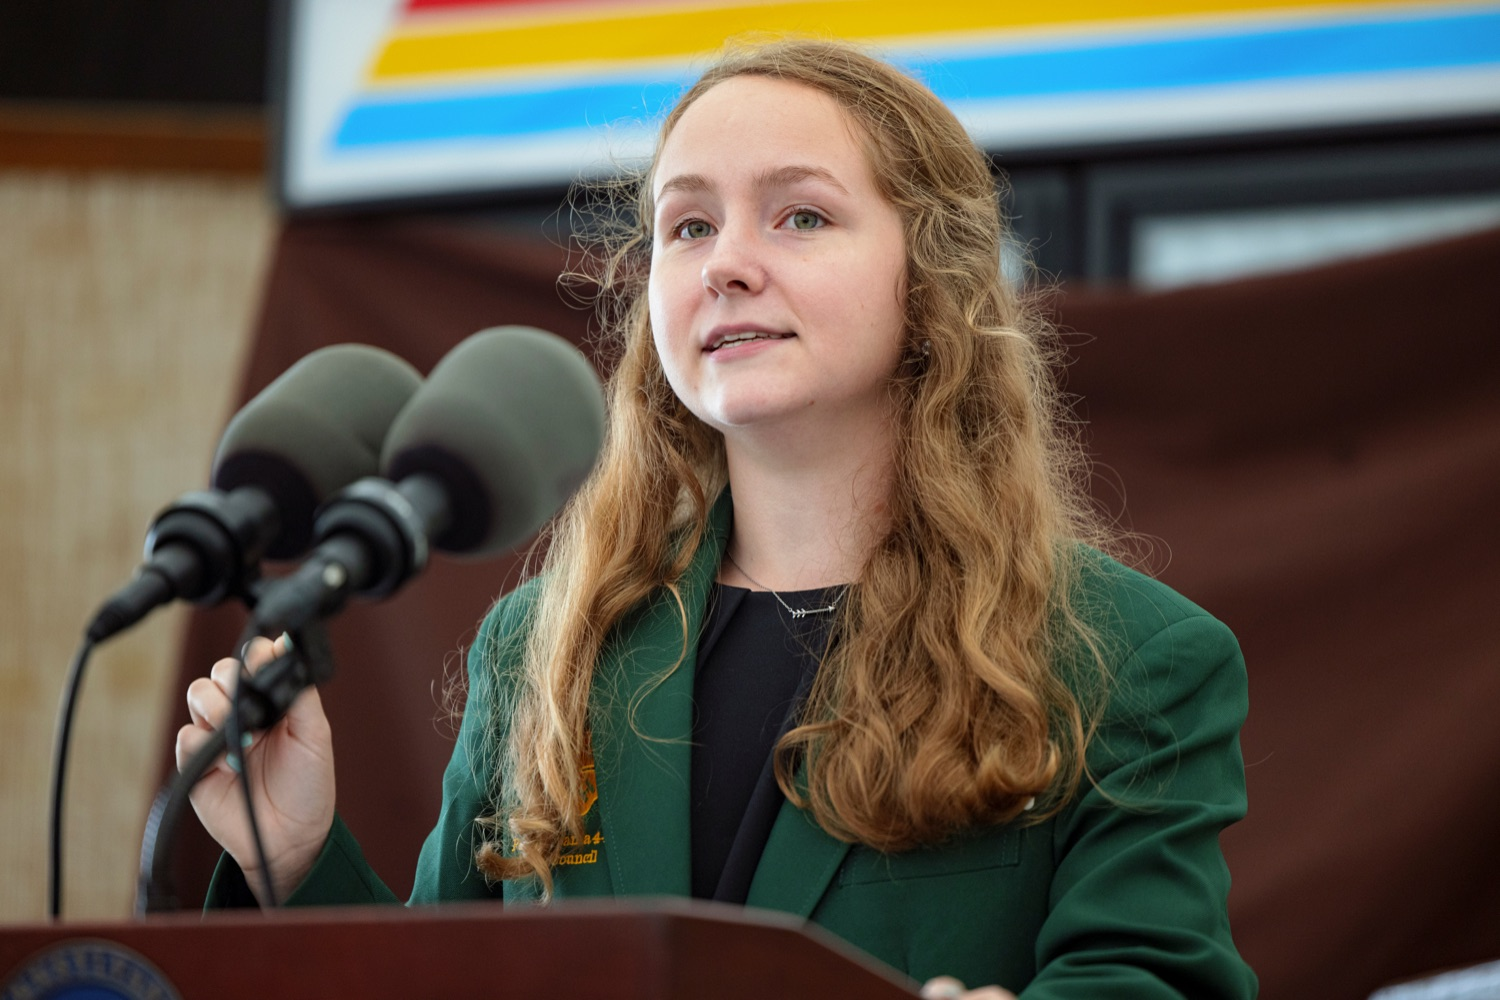 """<a href=""""https://filesource.wostreaming.net/commonwealthofpa/photo/19118_AG_FarmShowTheme_NK_010.jpg"""" target=""""_blank"""">⇣Download Photo<br></a>Livy Jumper, 4-H State Council President, speaks during a press conference, which announced the 106th Pennsylvania Farm Show will run from Saturday, January 8 through Saturday, January 15 and will be hosted at the Pennsylvania Farm Show Complex in Harrisburg, at Vale Wood Farms in Loretto on Thursday, September 16, 2021."""